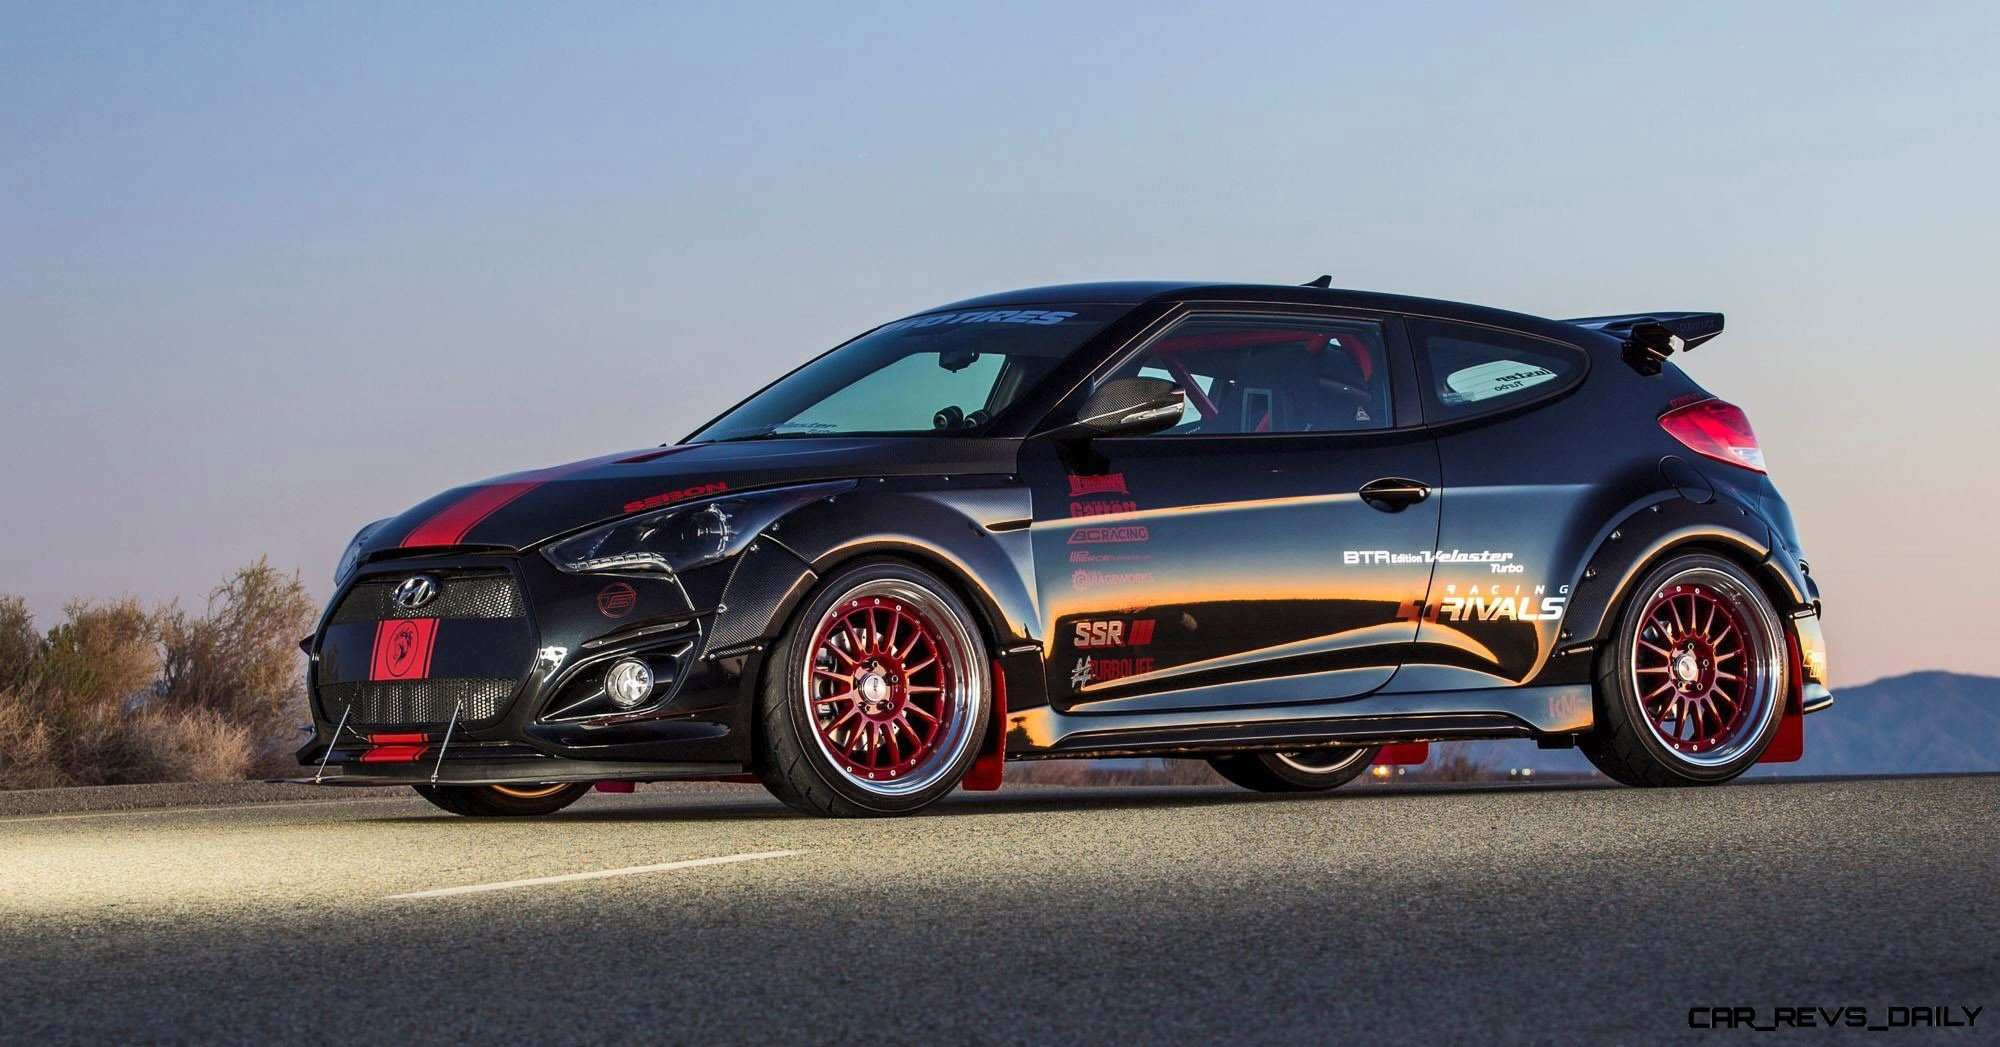 70 Best 2020 Hyundai Veloster Turbo Release Date And Concept